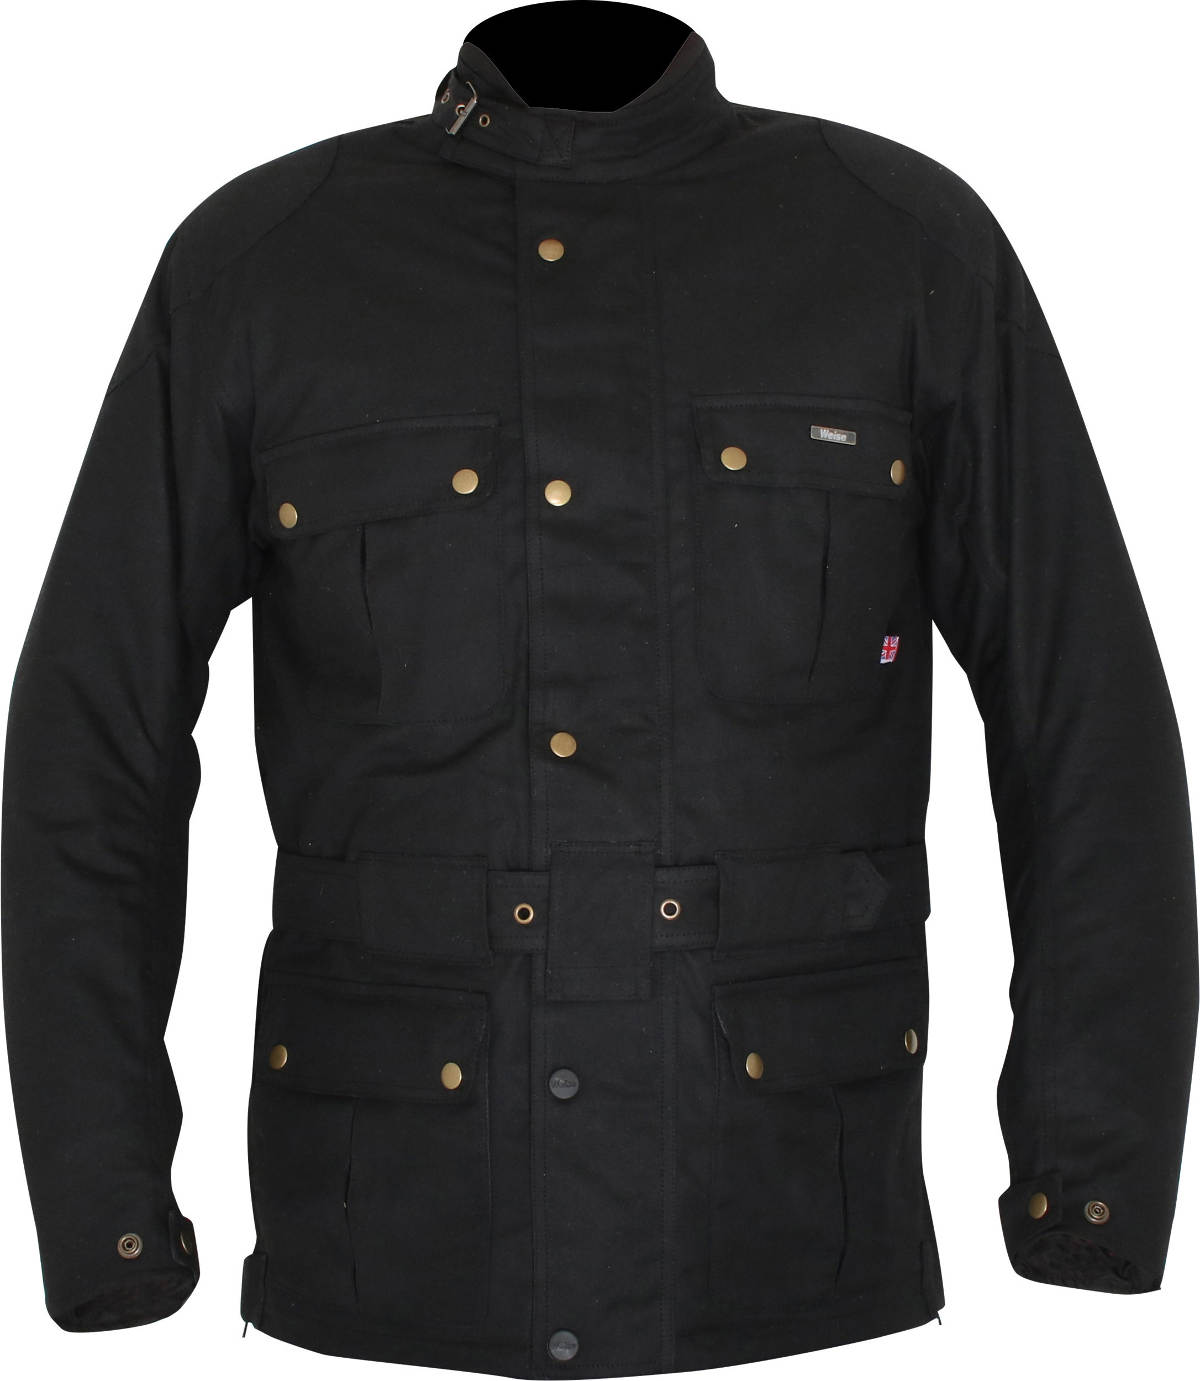 Weise Wax Cotton Motorcycle Jackets - The Weise Glenmore Wax Cotton Motorcycle Jacket